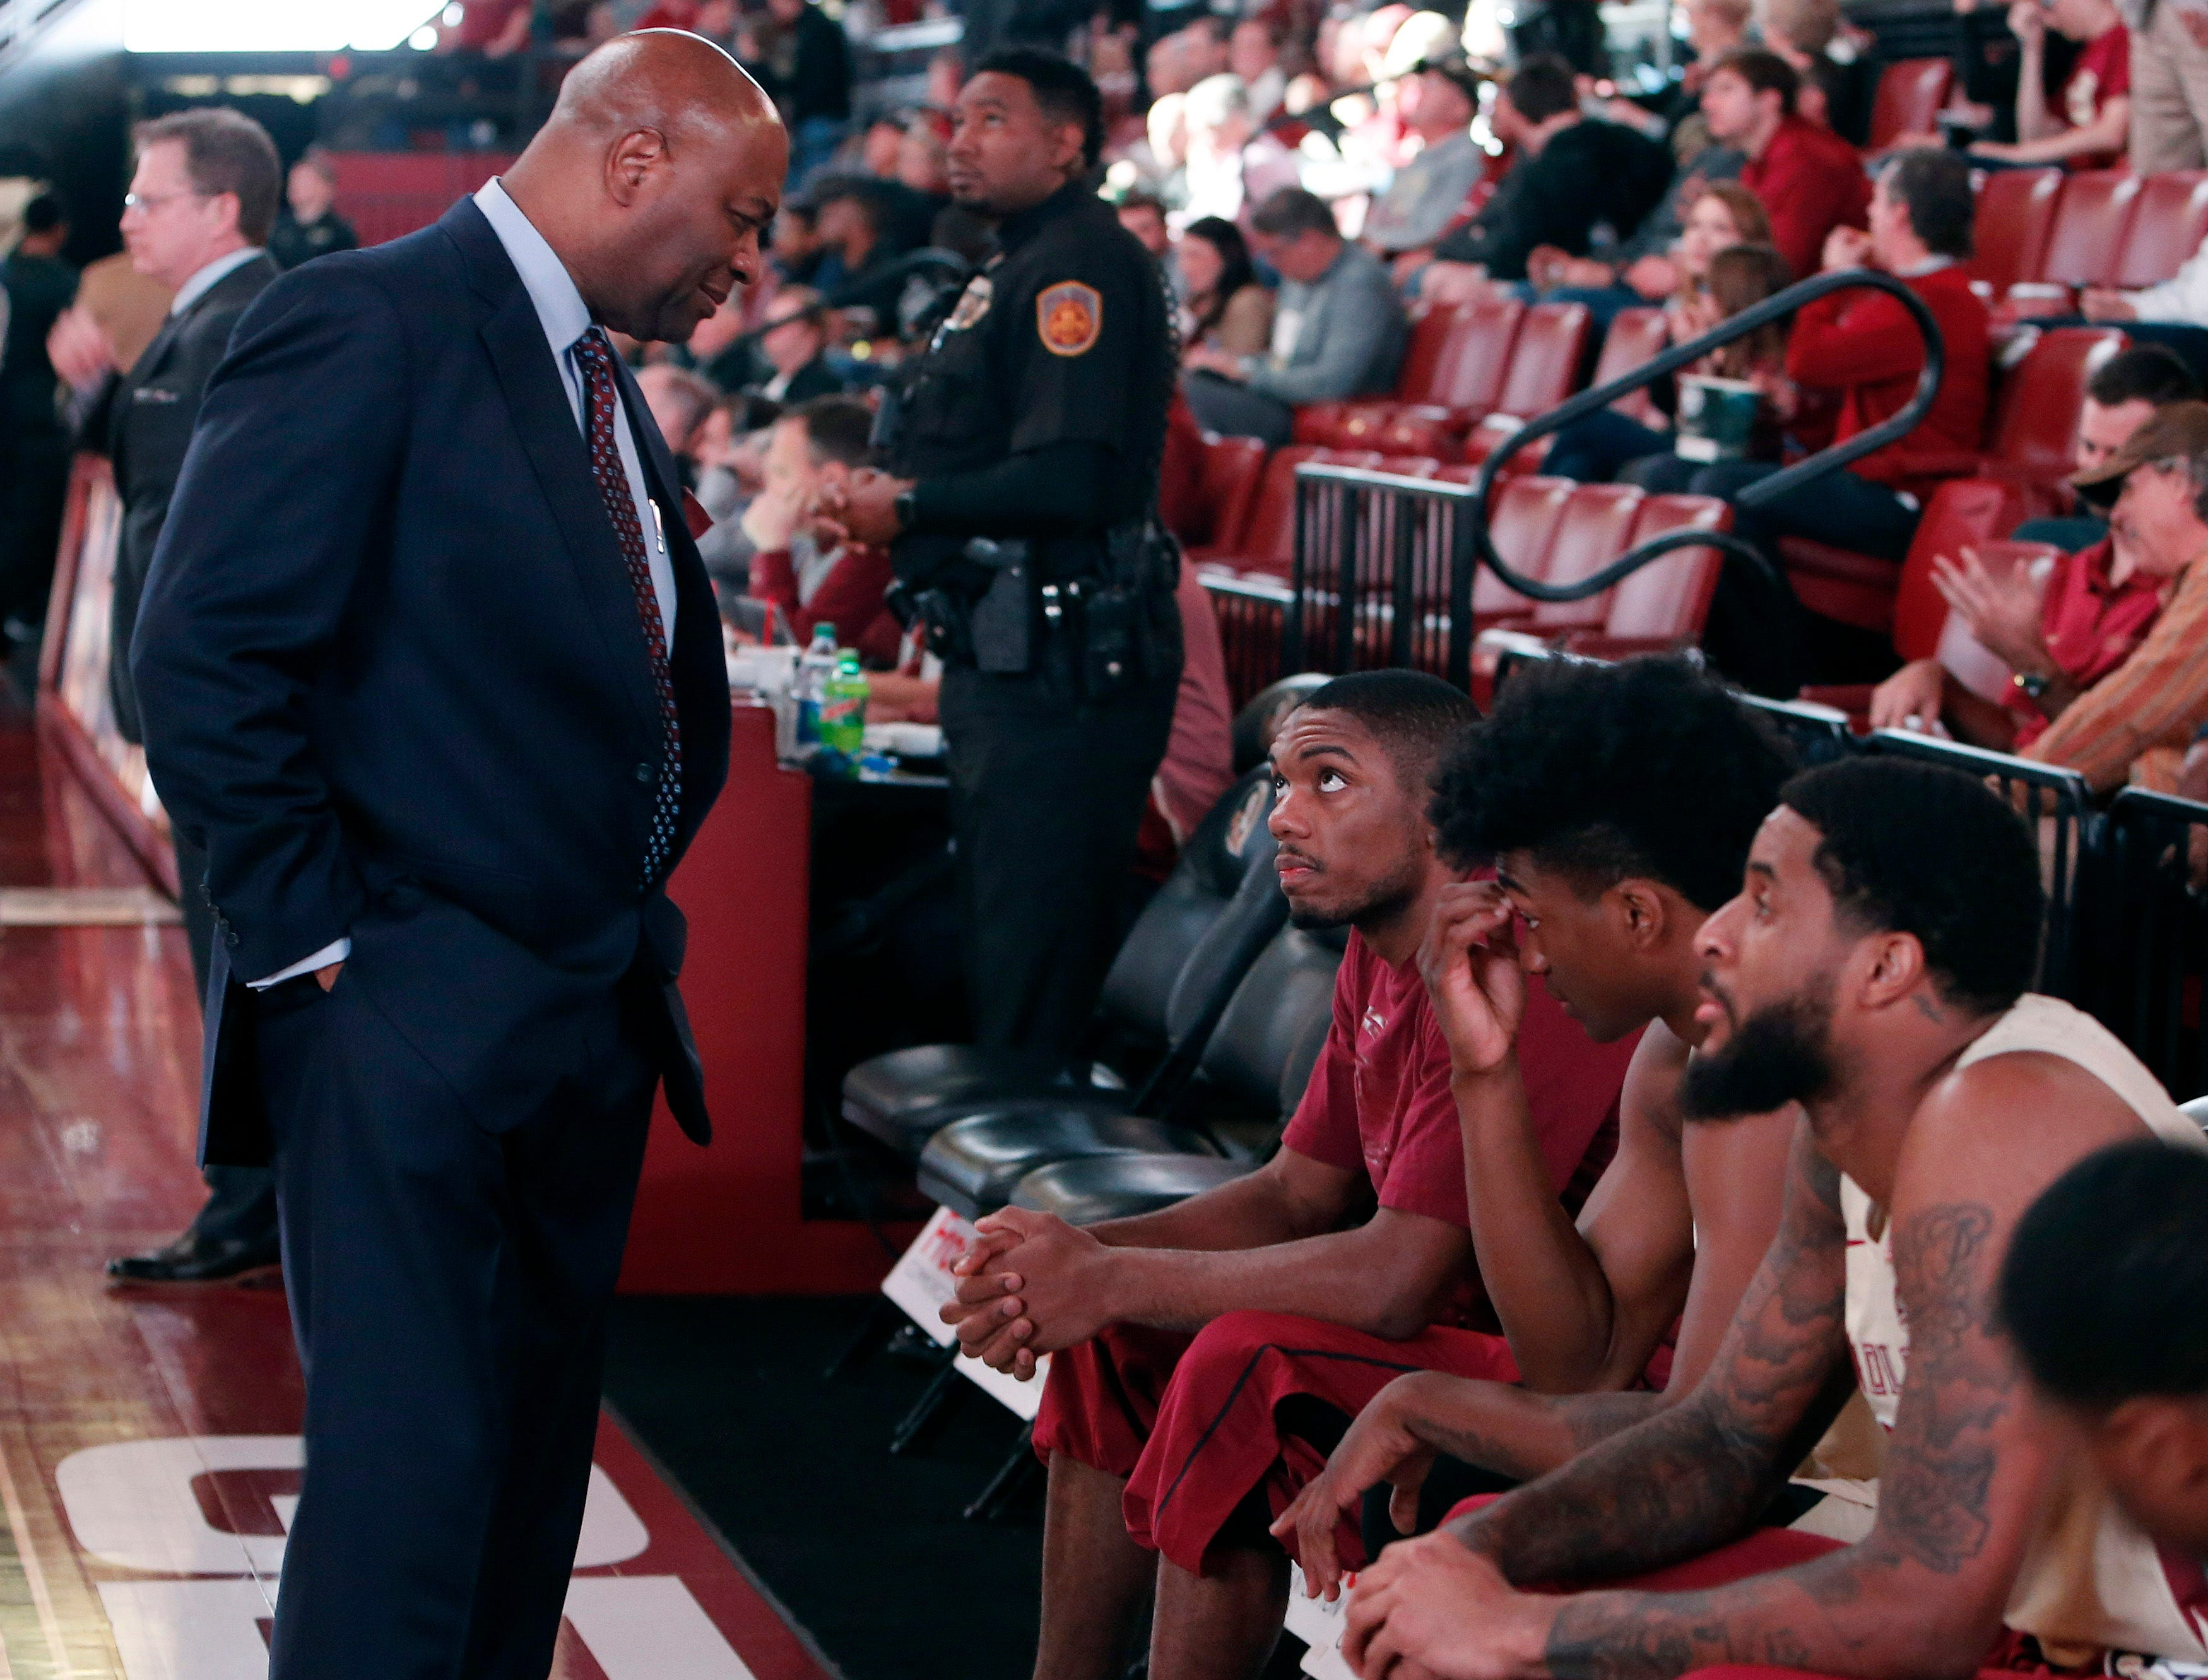 Feb 13, 2019; Tallahassee, FL, USA; Florida State Seminoles head coach Leonard Hamilton (left) talks to players on the bench prior to their game agianst the Wake Forest Demon Deacons at Donald L. Tucker Center. Mandatory Credit: Glenn Beil-USA TODAY Sports